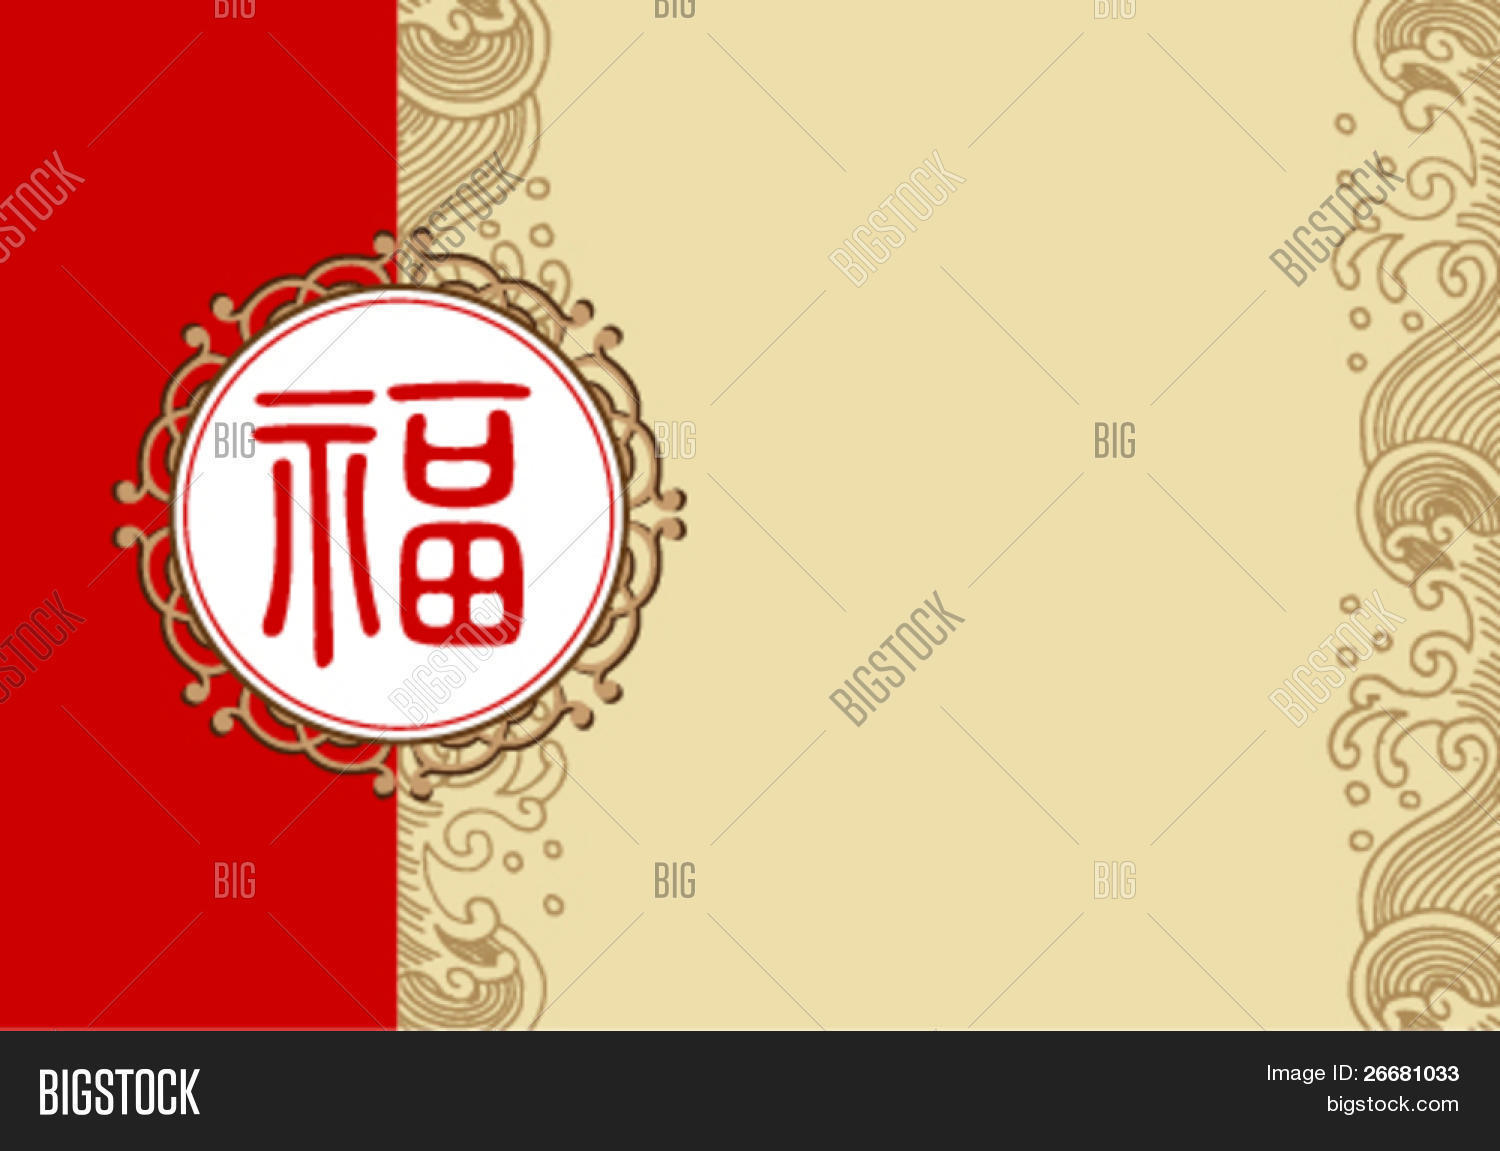 Chinese New Year Vector Photo Free Trial Bigstock